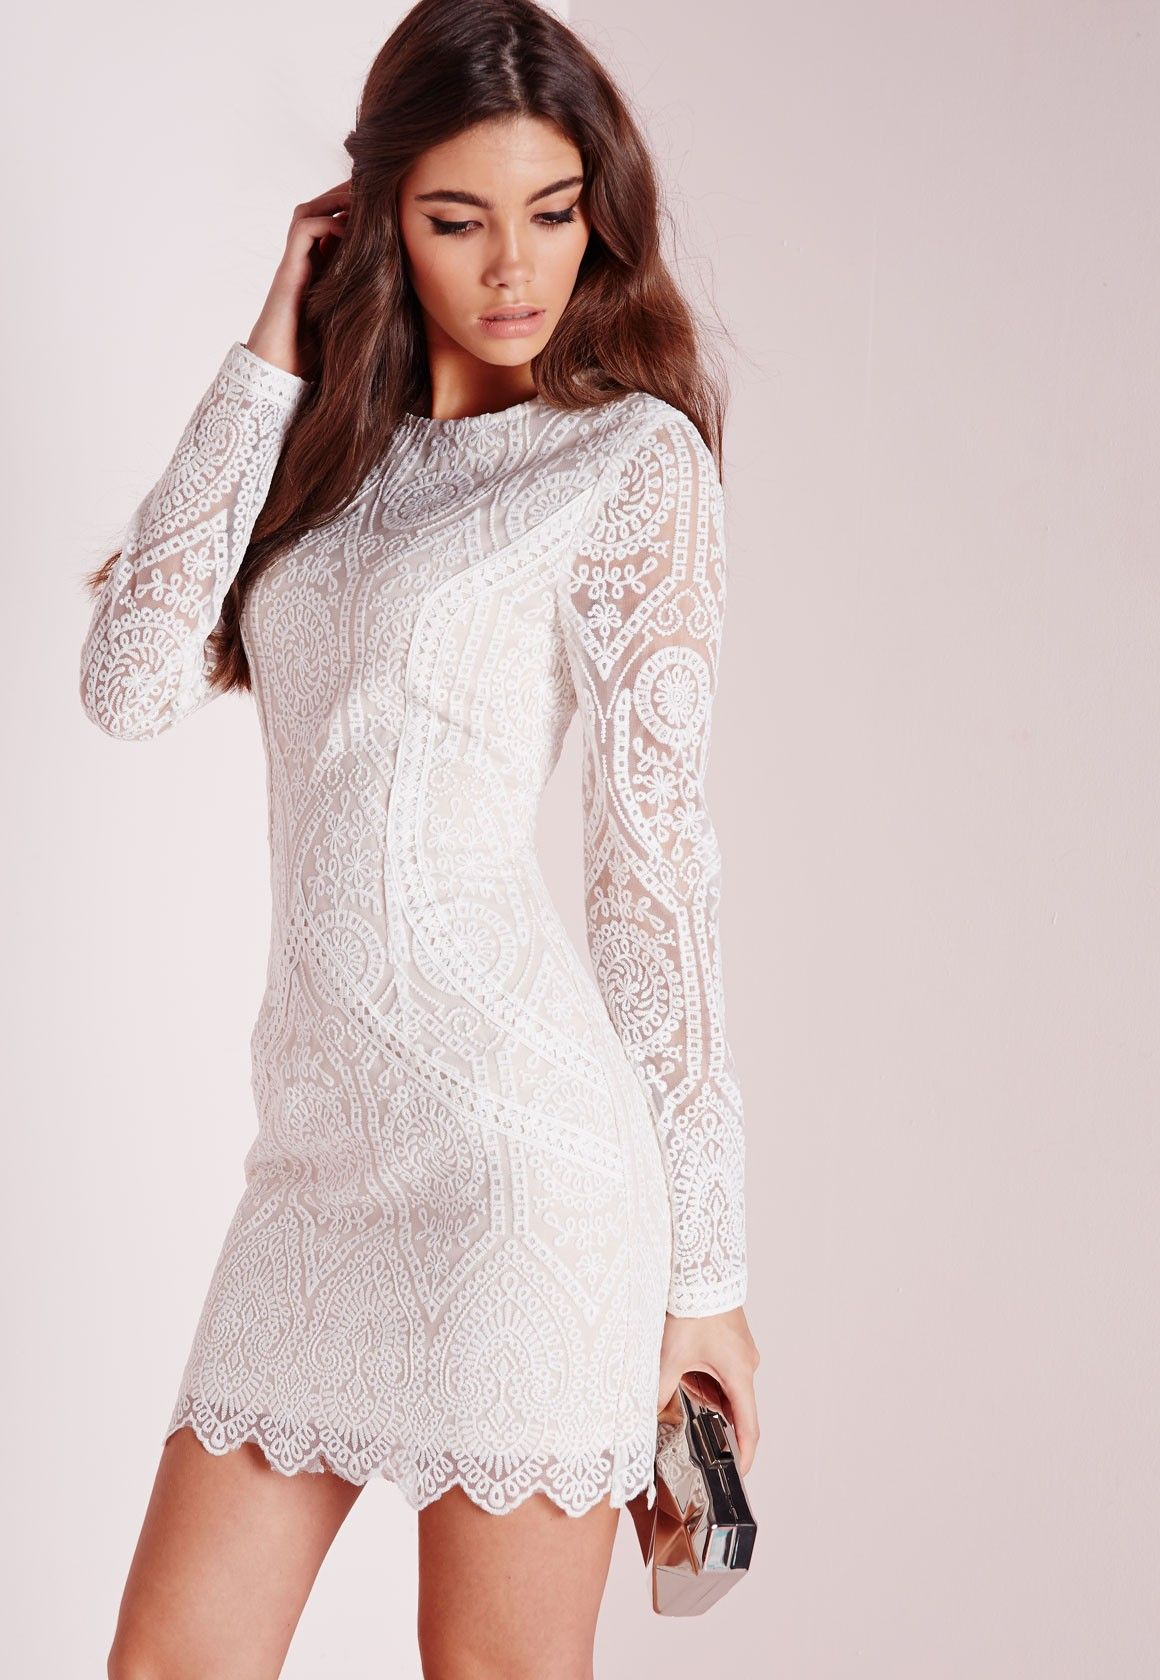 022c9d312588 Missguided - Lace Long Sleeve Bodycon Dress White/Nude | Dress in ...